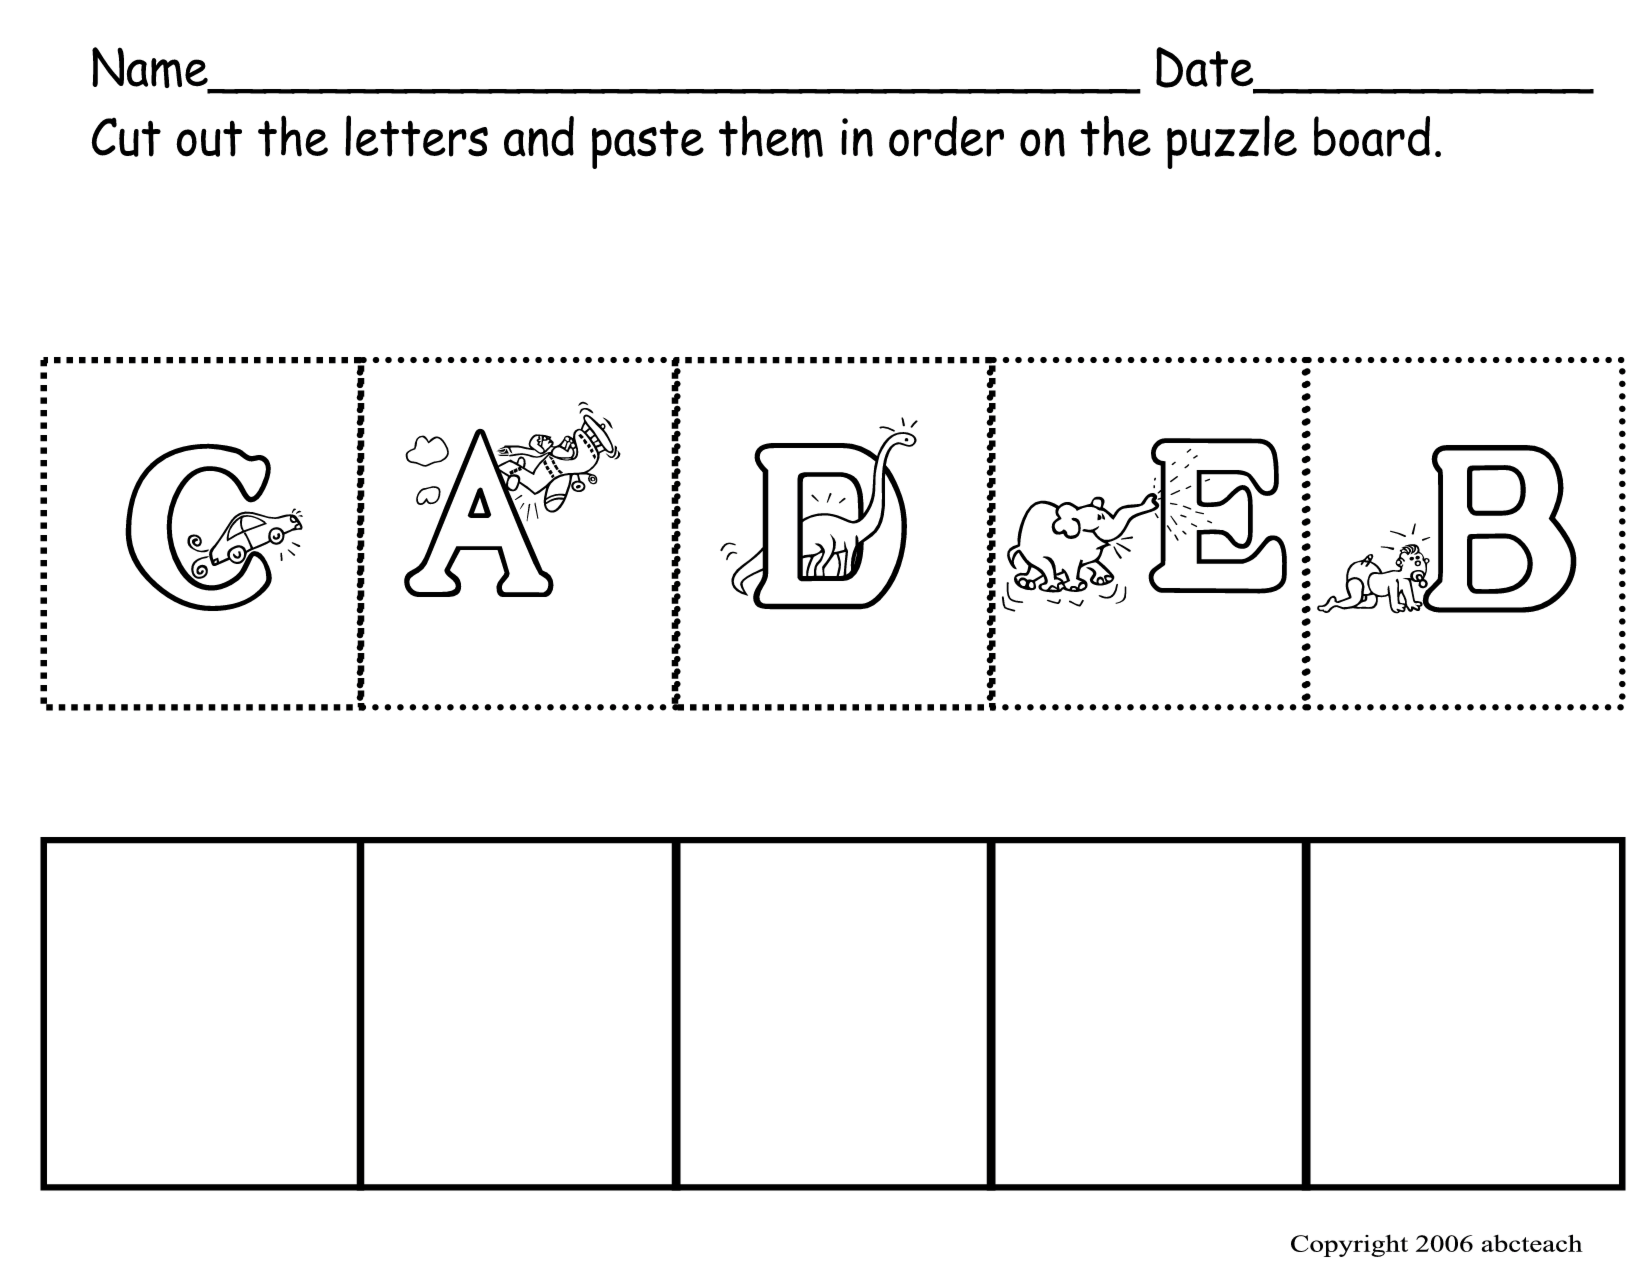 Alphabet Worksheets for Preschoolers | Abc Preschool ...